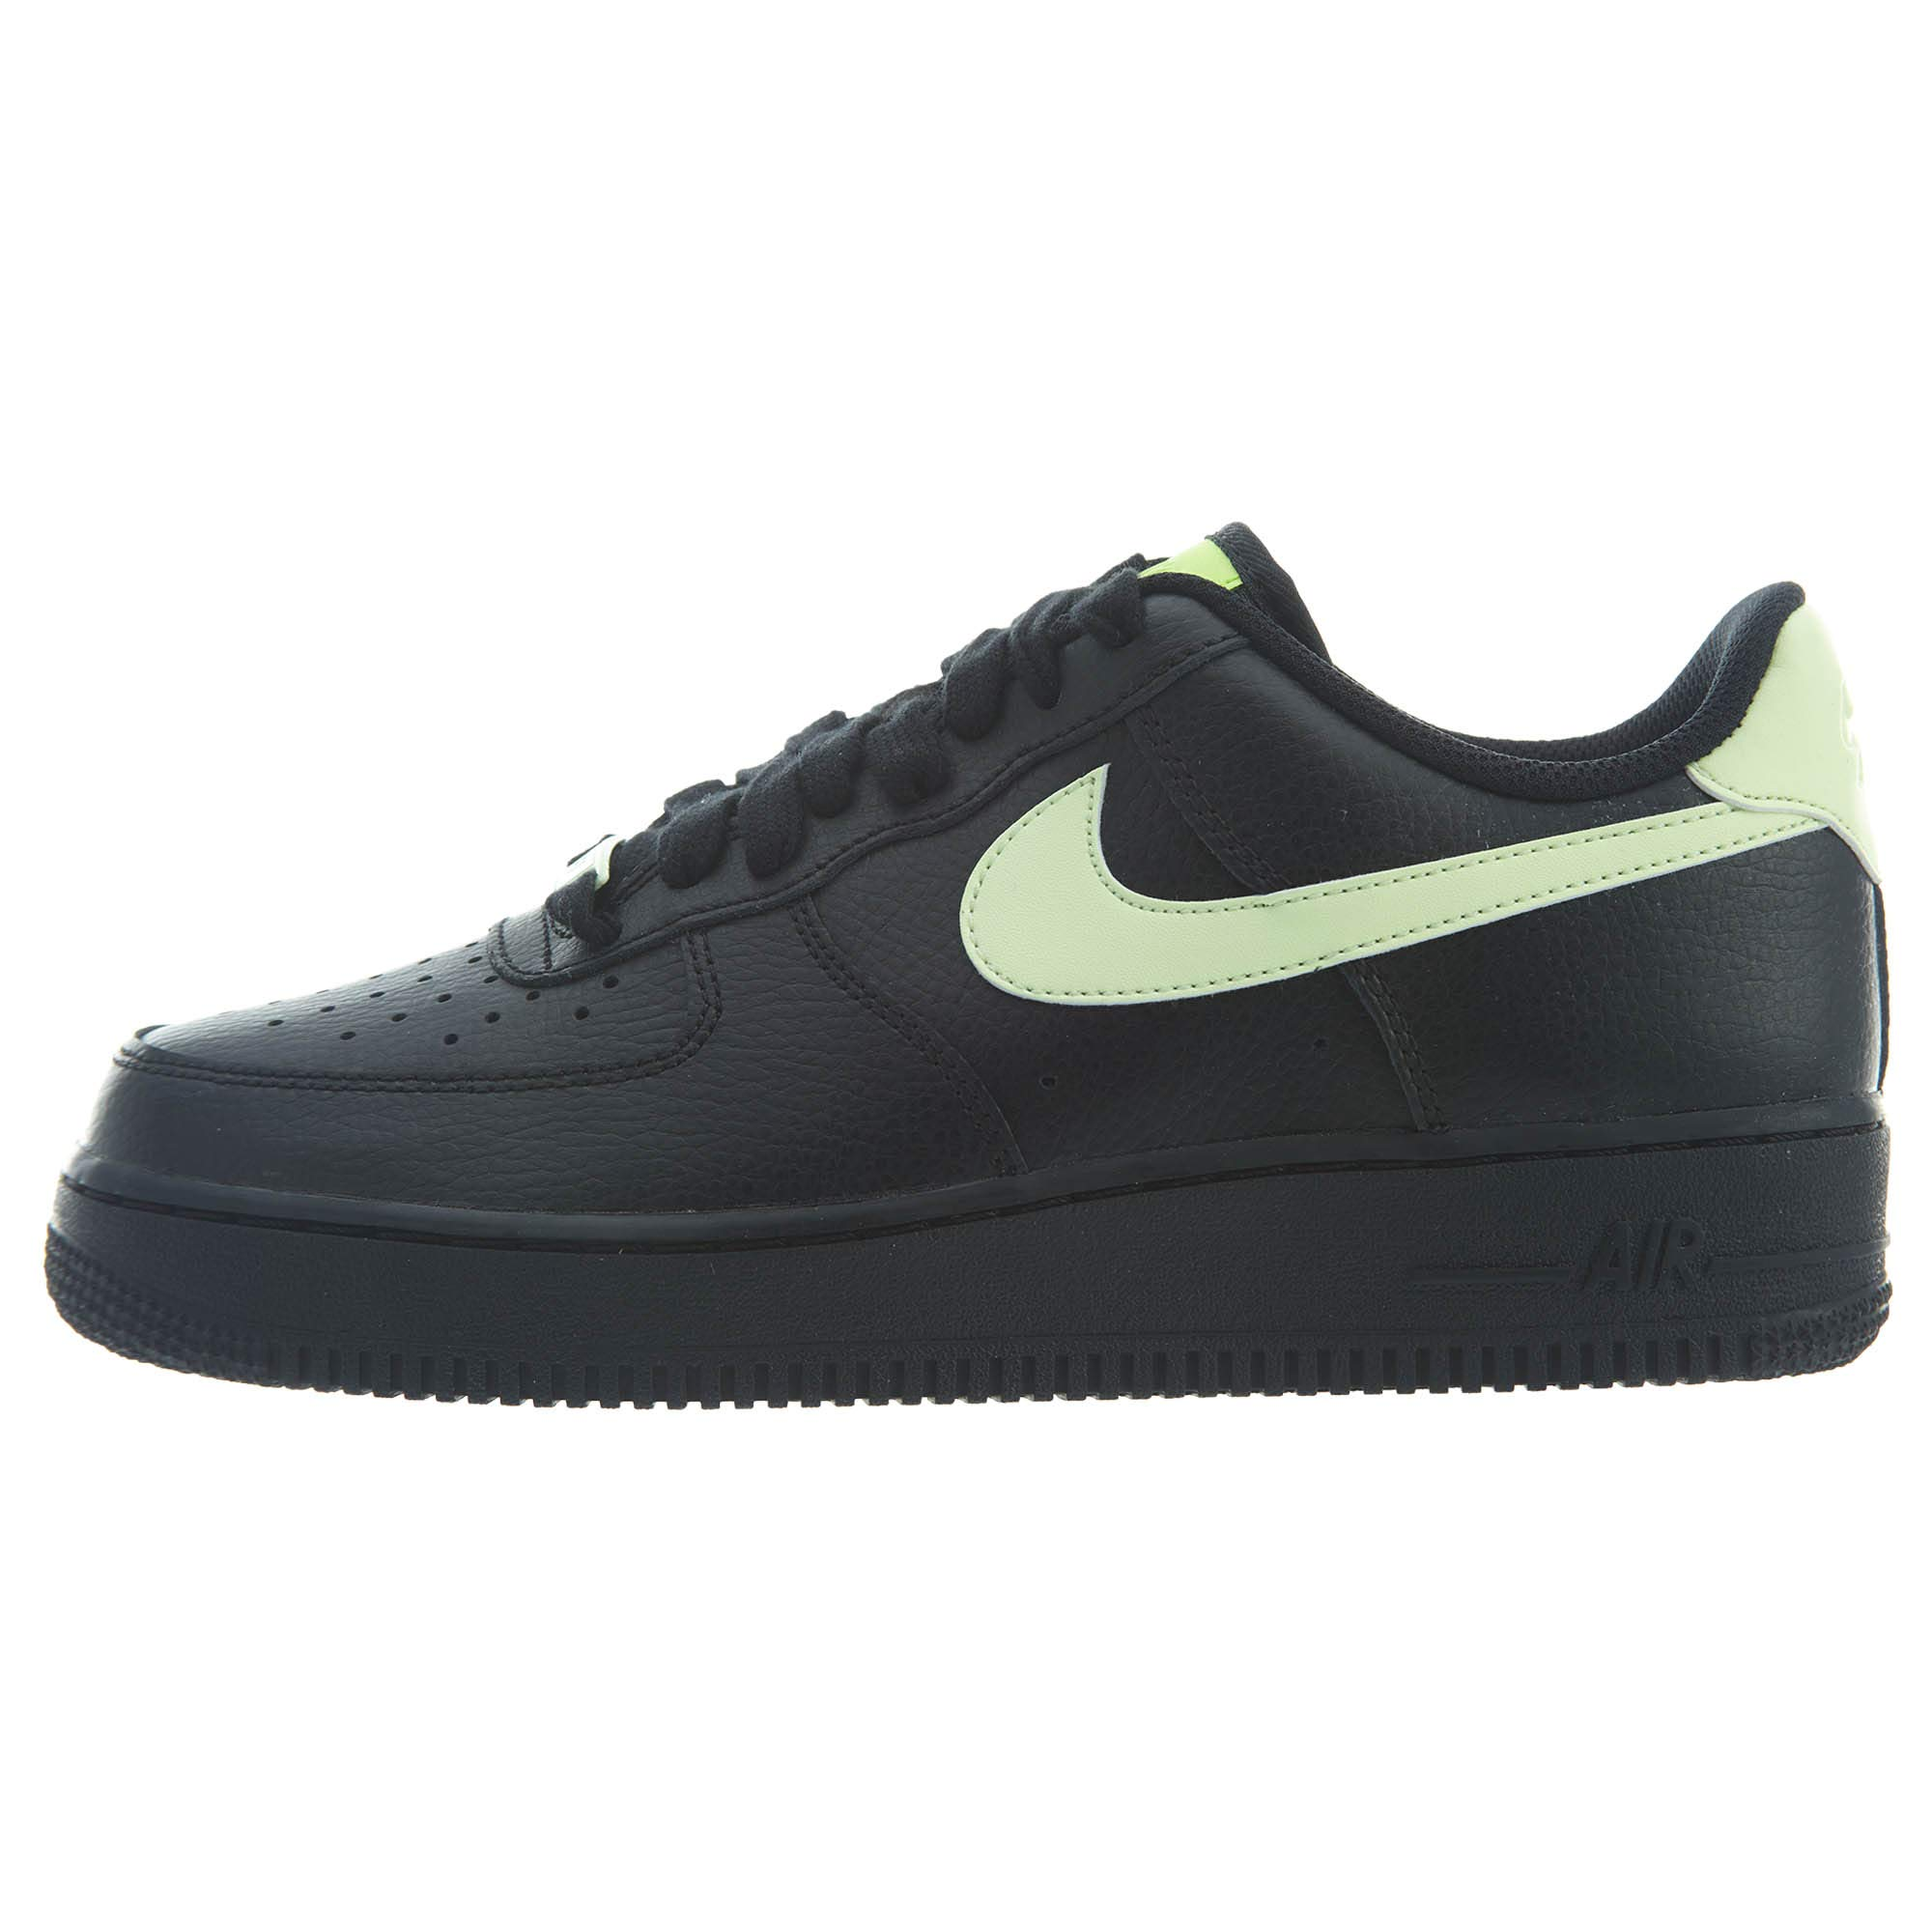 Galleon Nike WMNS Air Force 1 '07 Womens 315115 040 Size 9.5